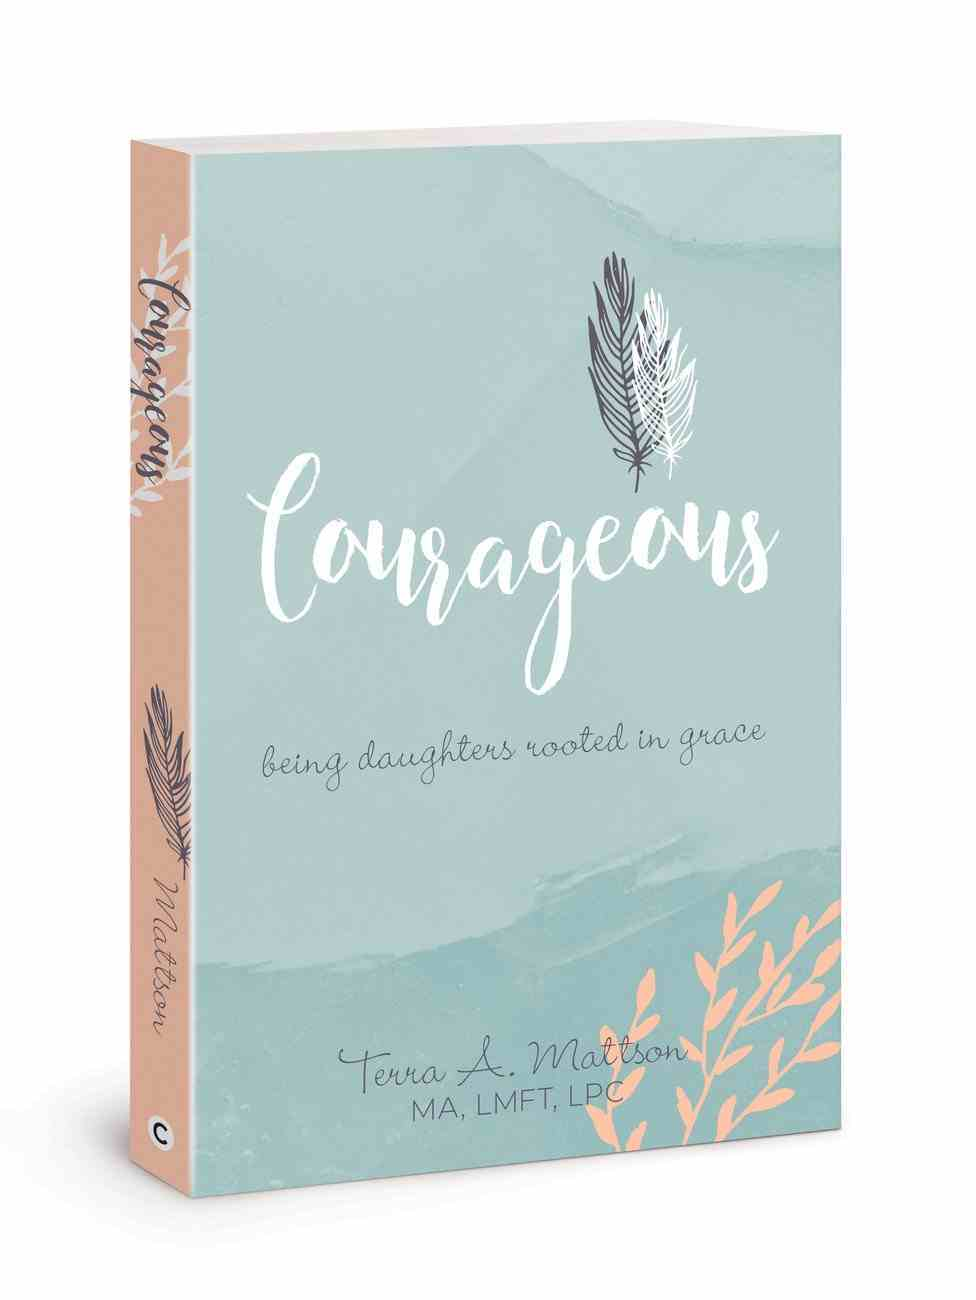 Courageous: Being Daughters Rooted in Grace Paperback